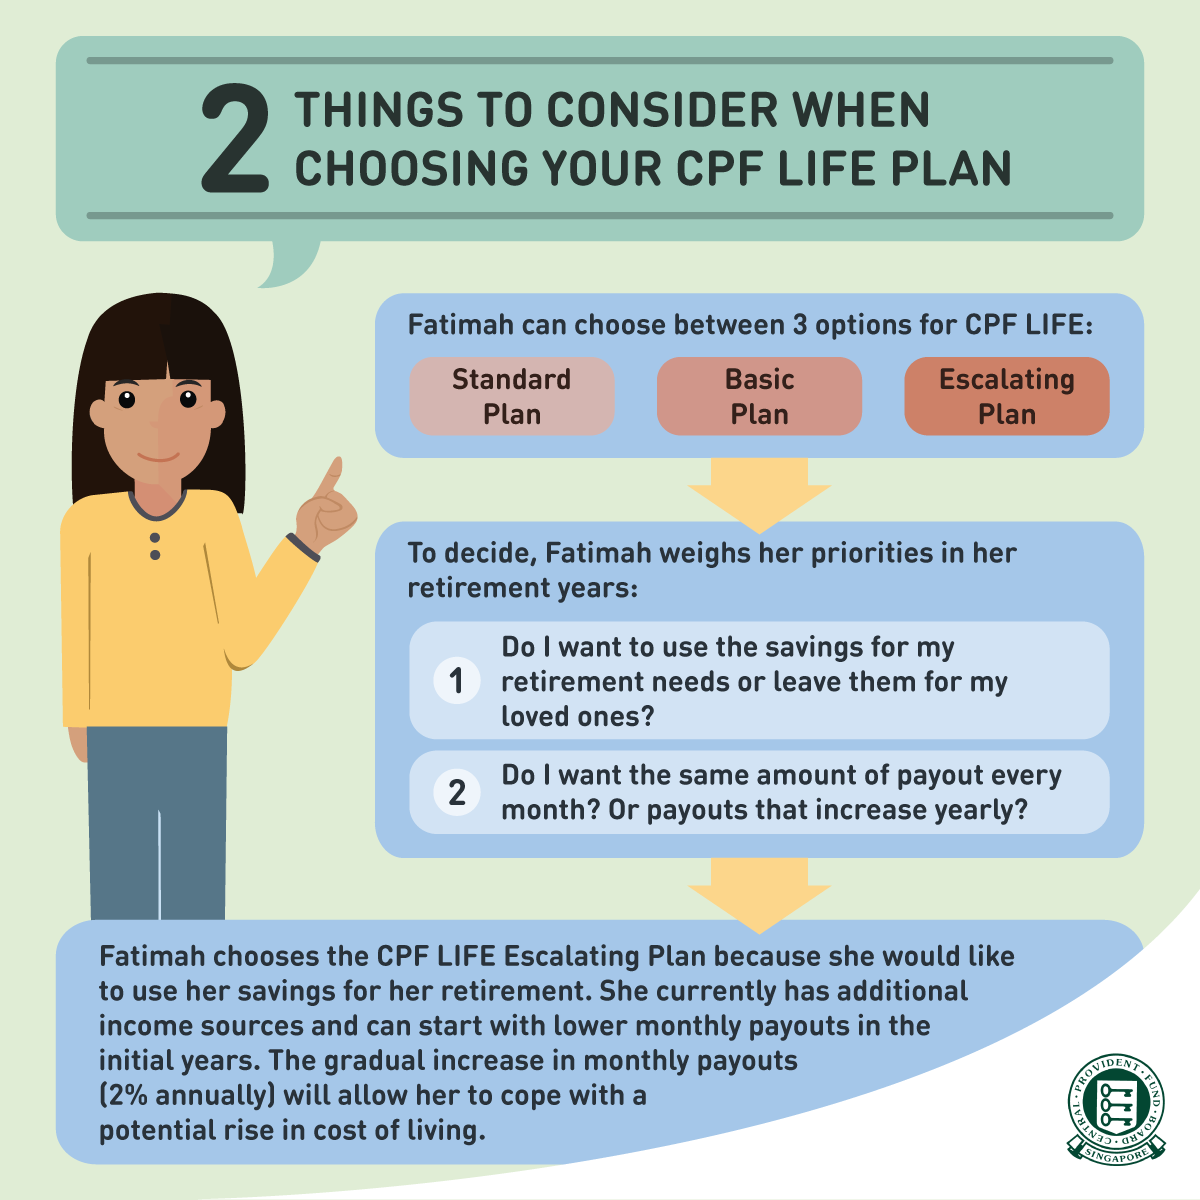 2 things to consider when choosing your CPF LIFE plan.